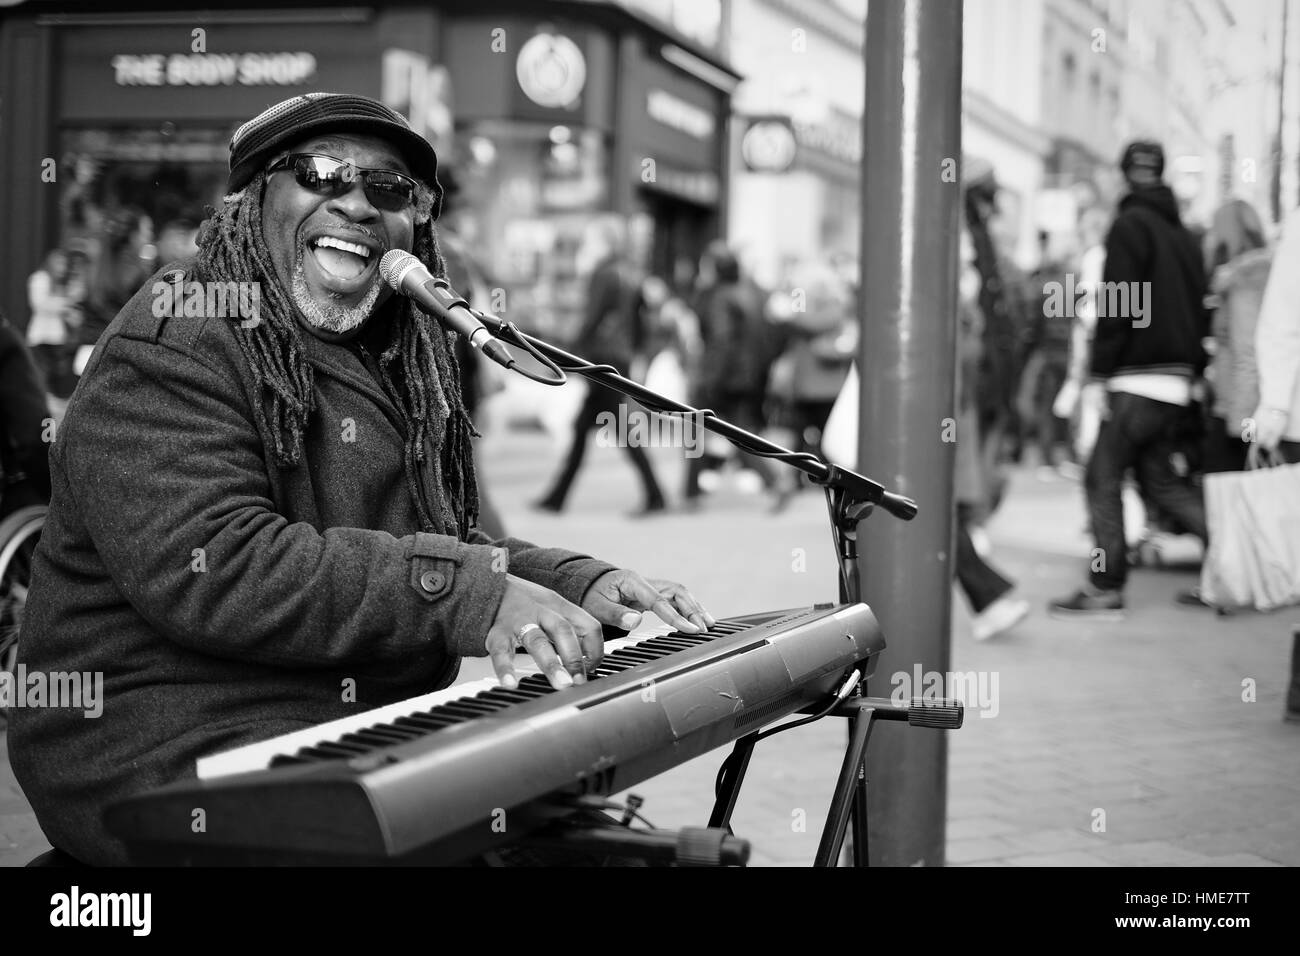 An Afro-Caribbean man with dreadlocks and sunglasses plays keyboard in the street of a British town. - Stock Image